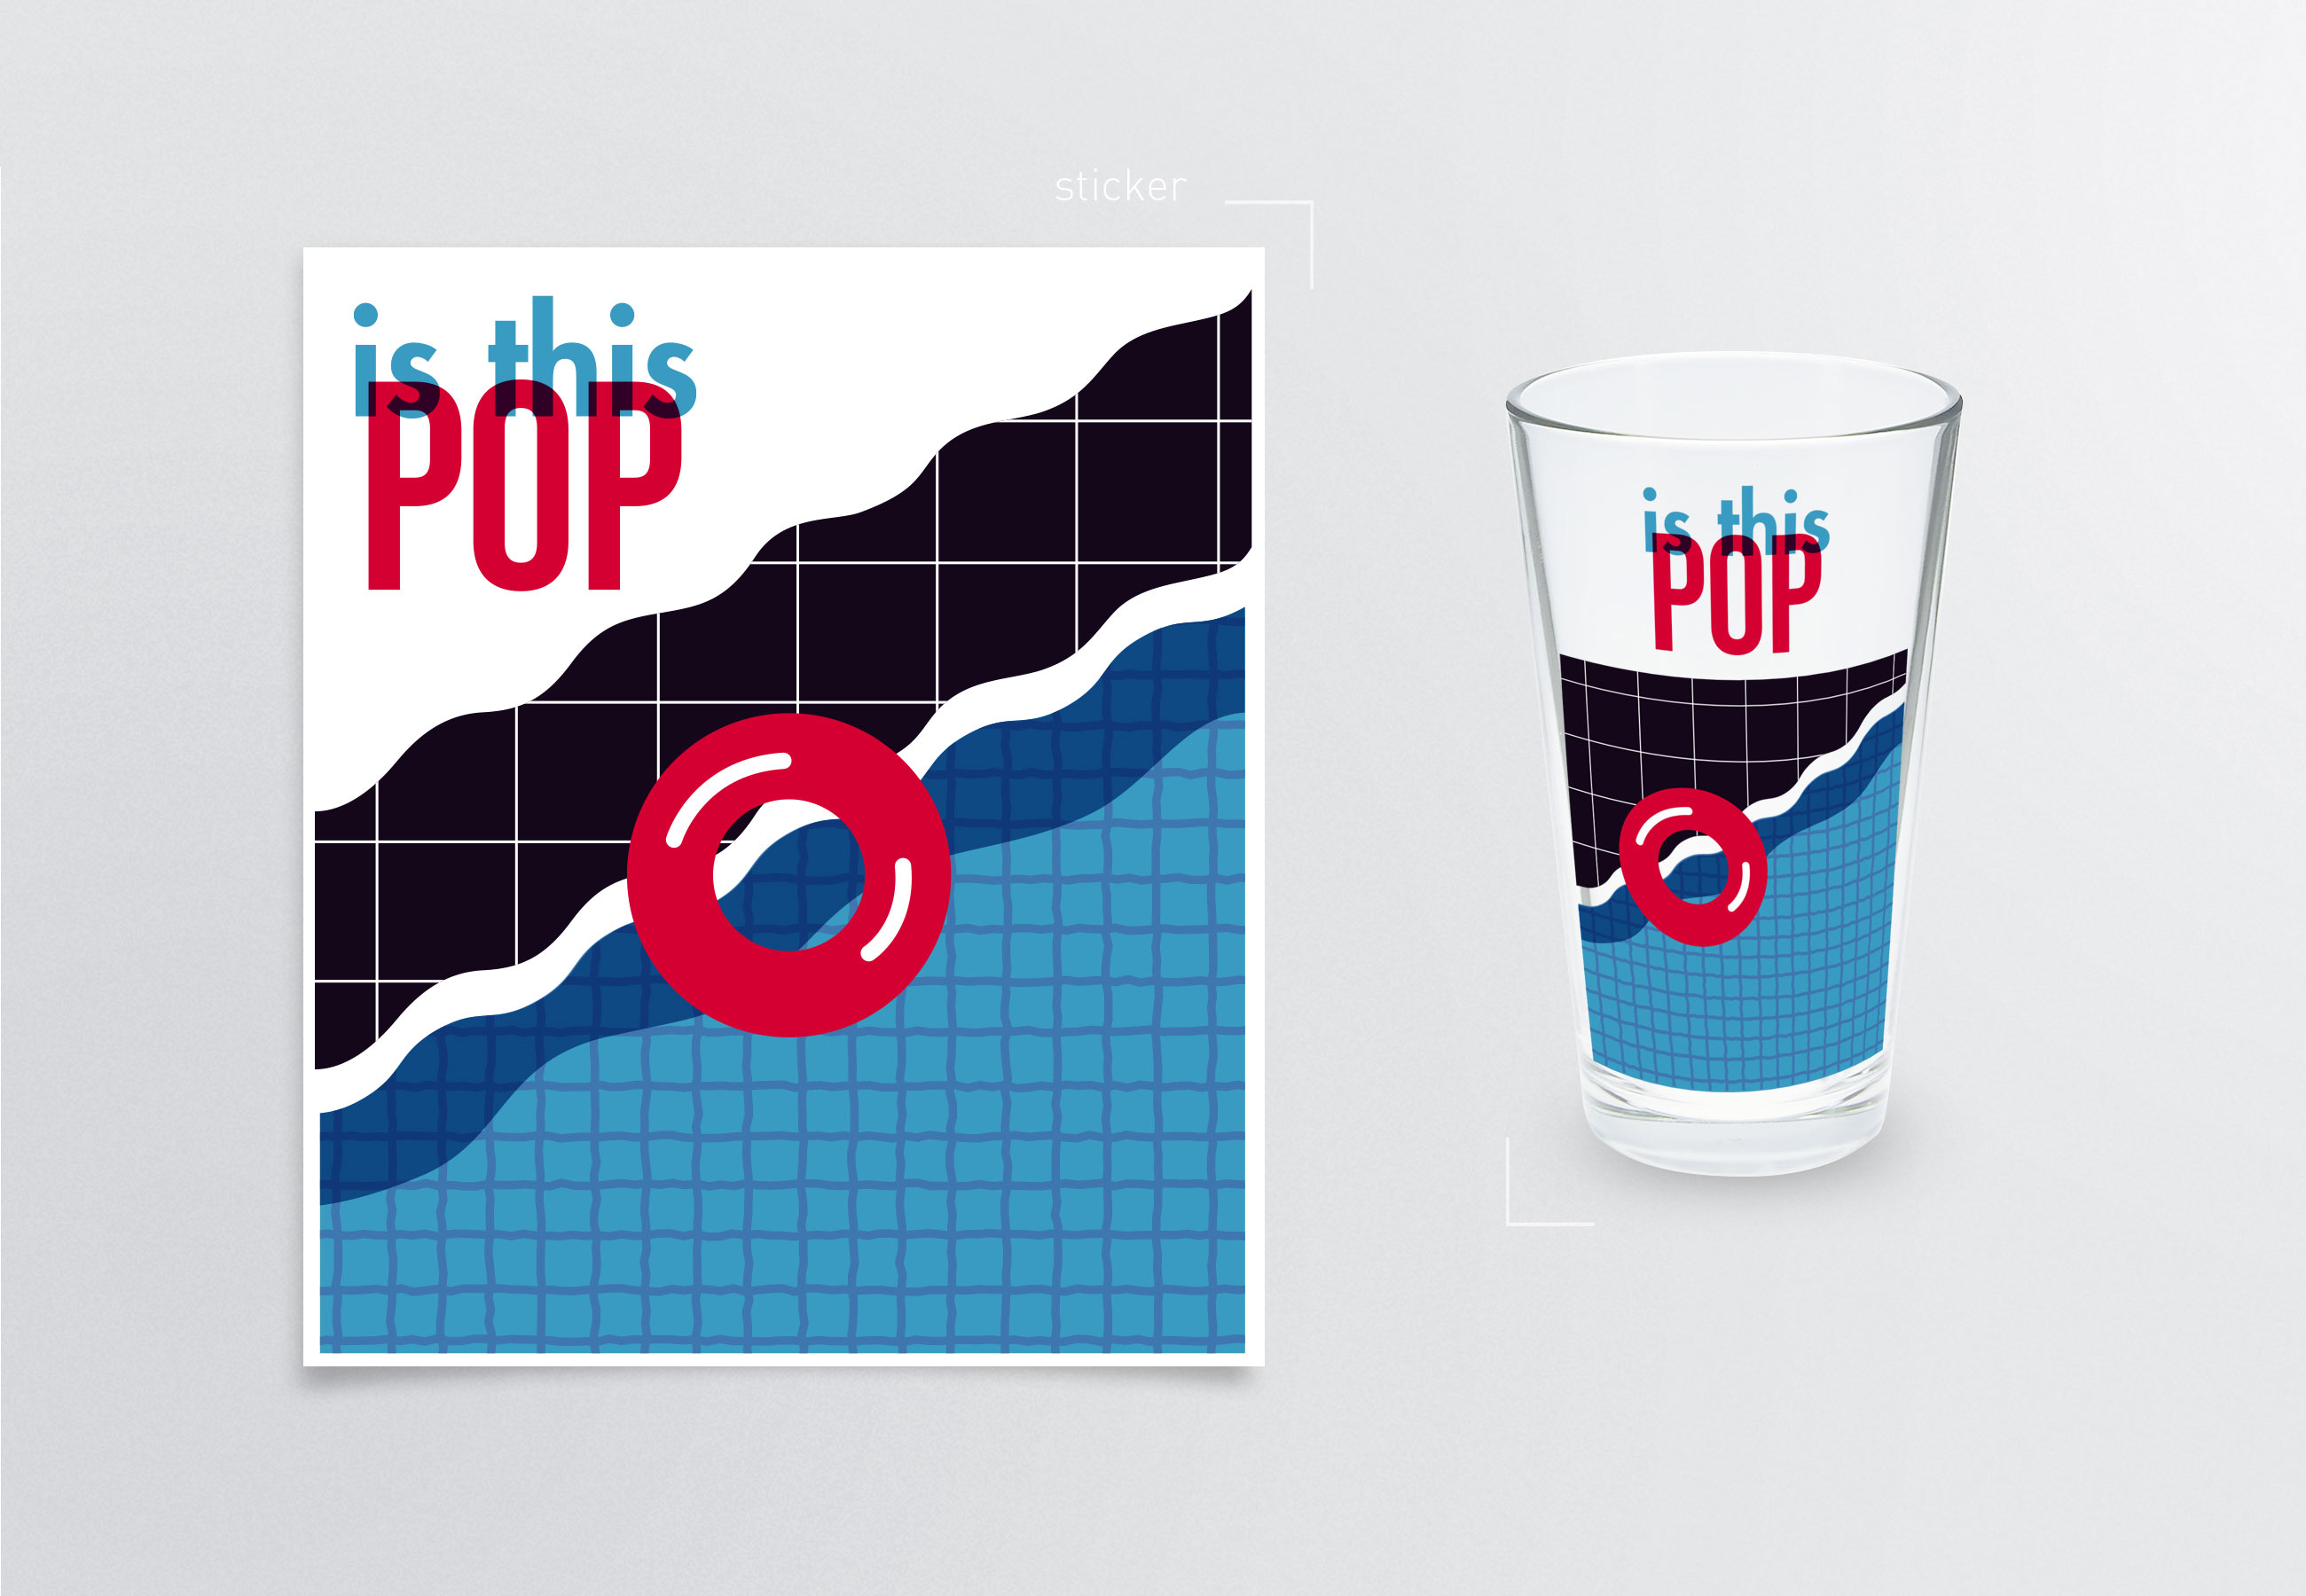 is_this_pop_04_parallele_graphique